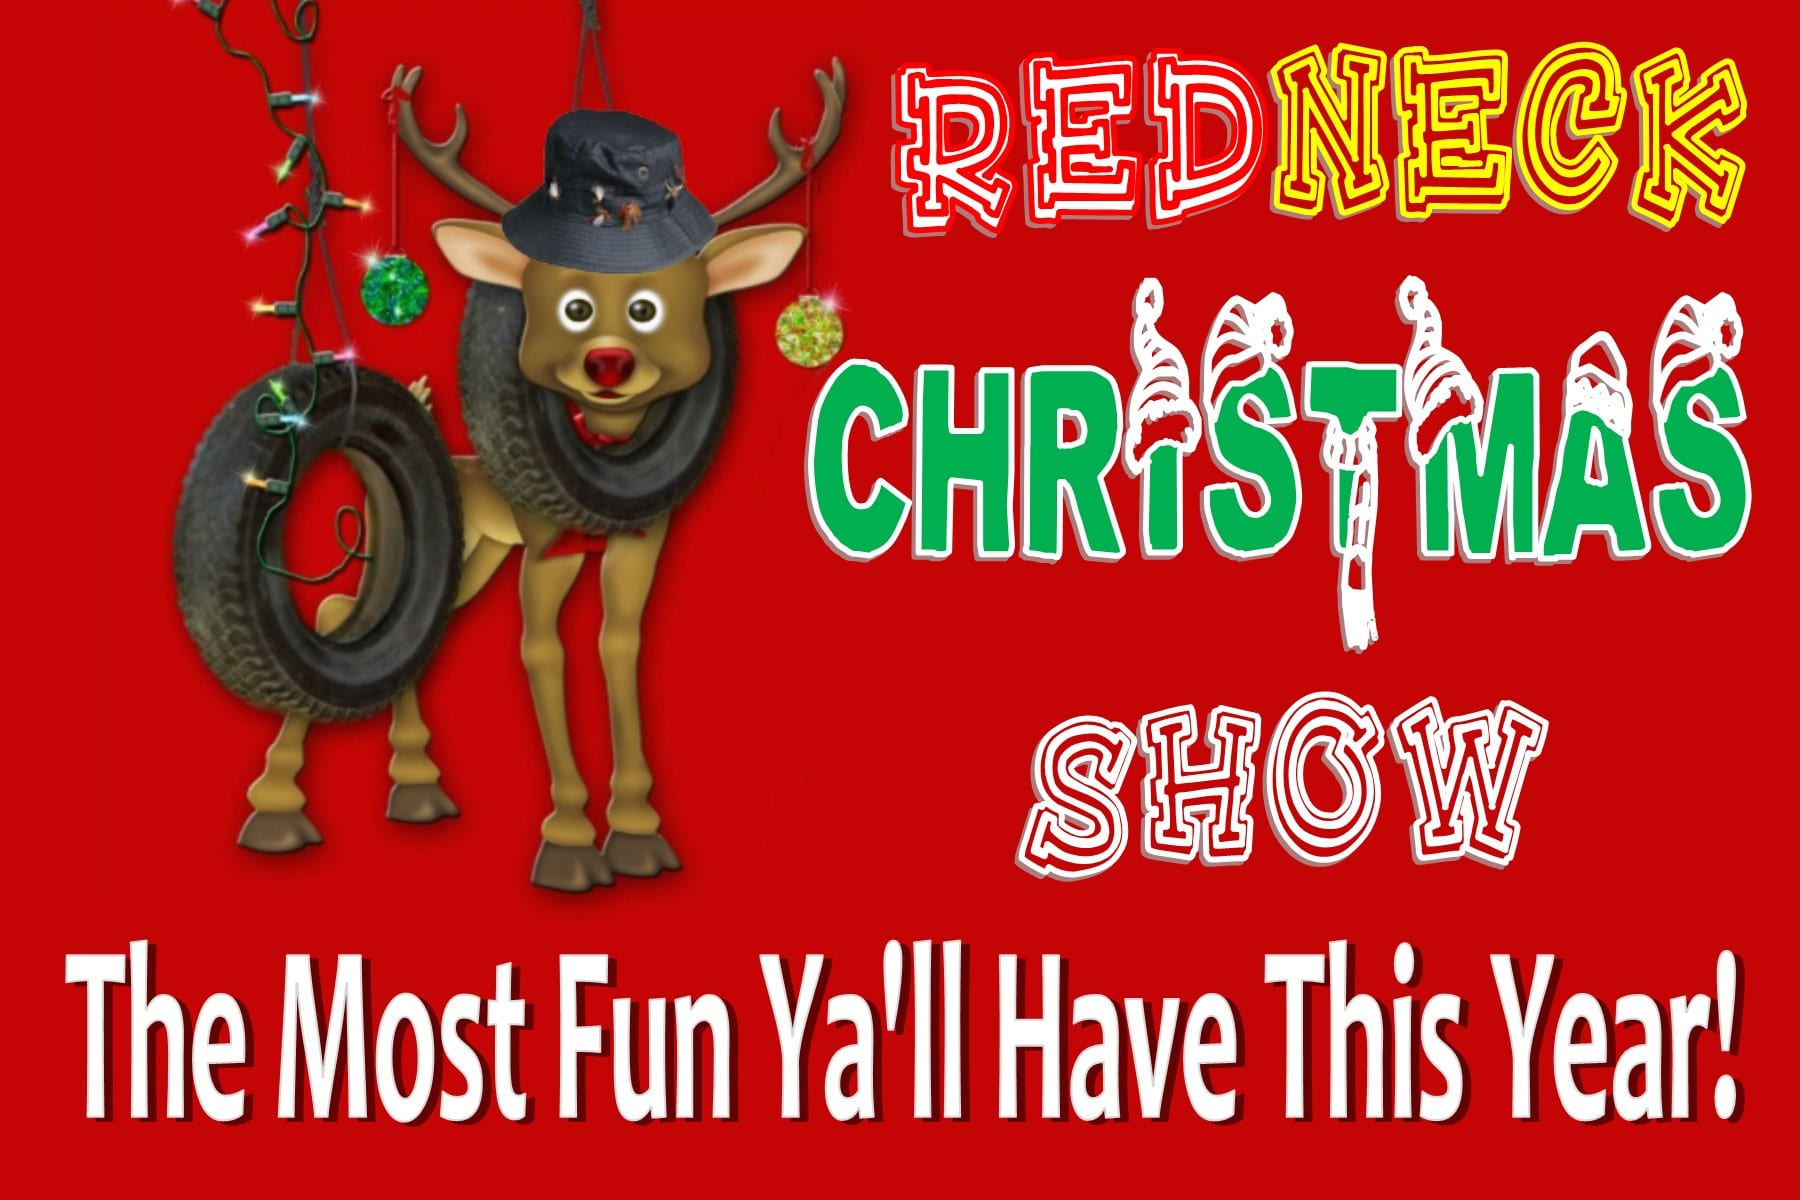 Redneck Christmas Show - Holiday Show